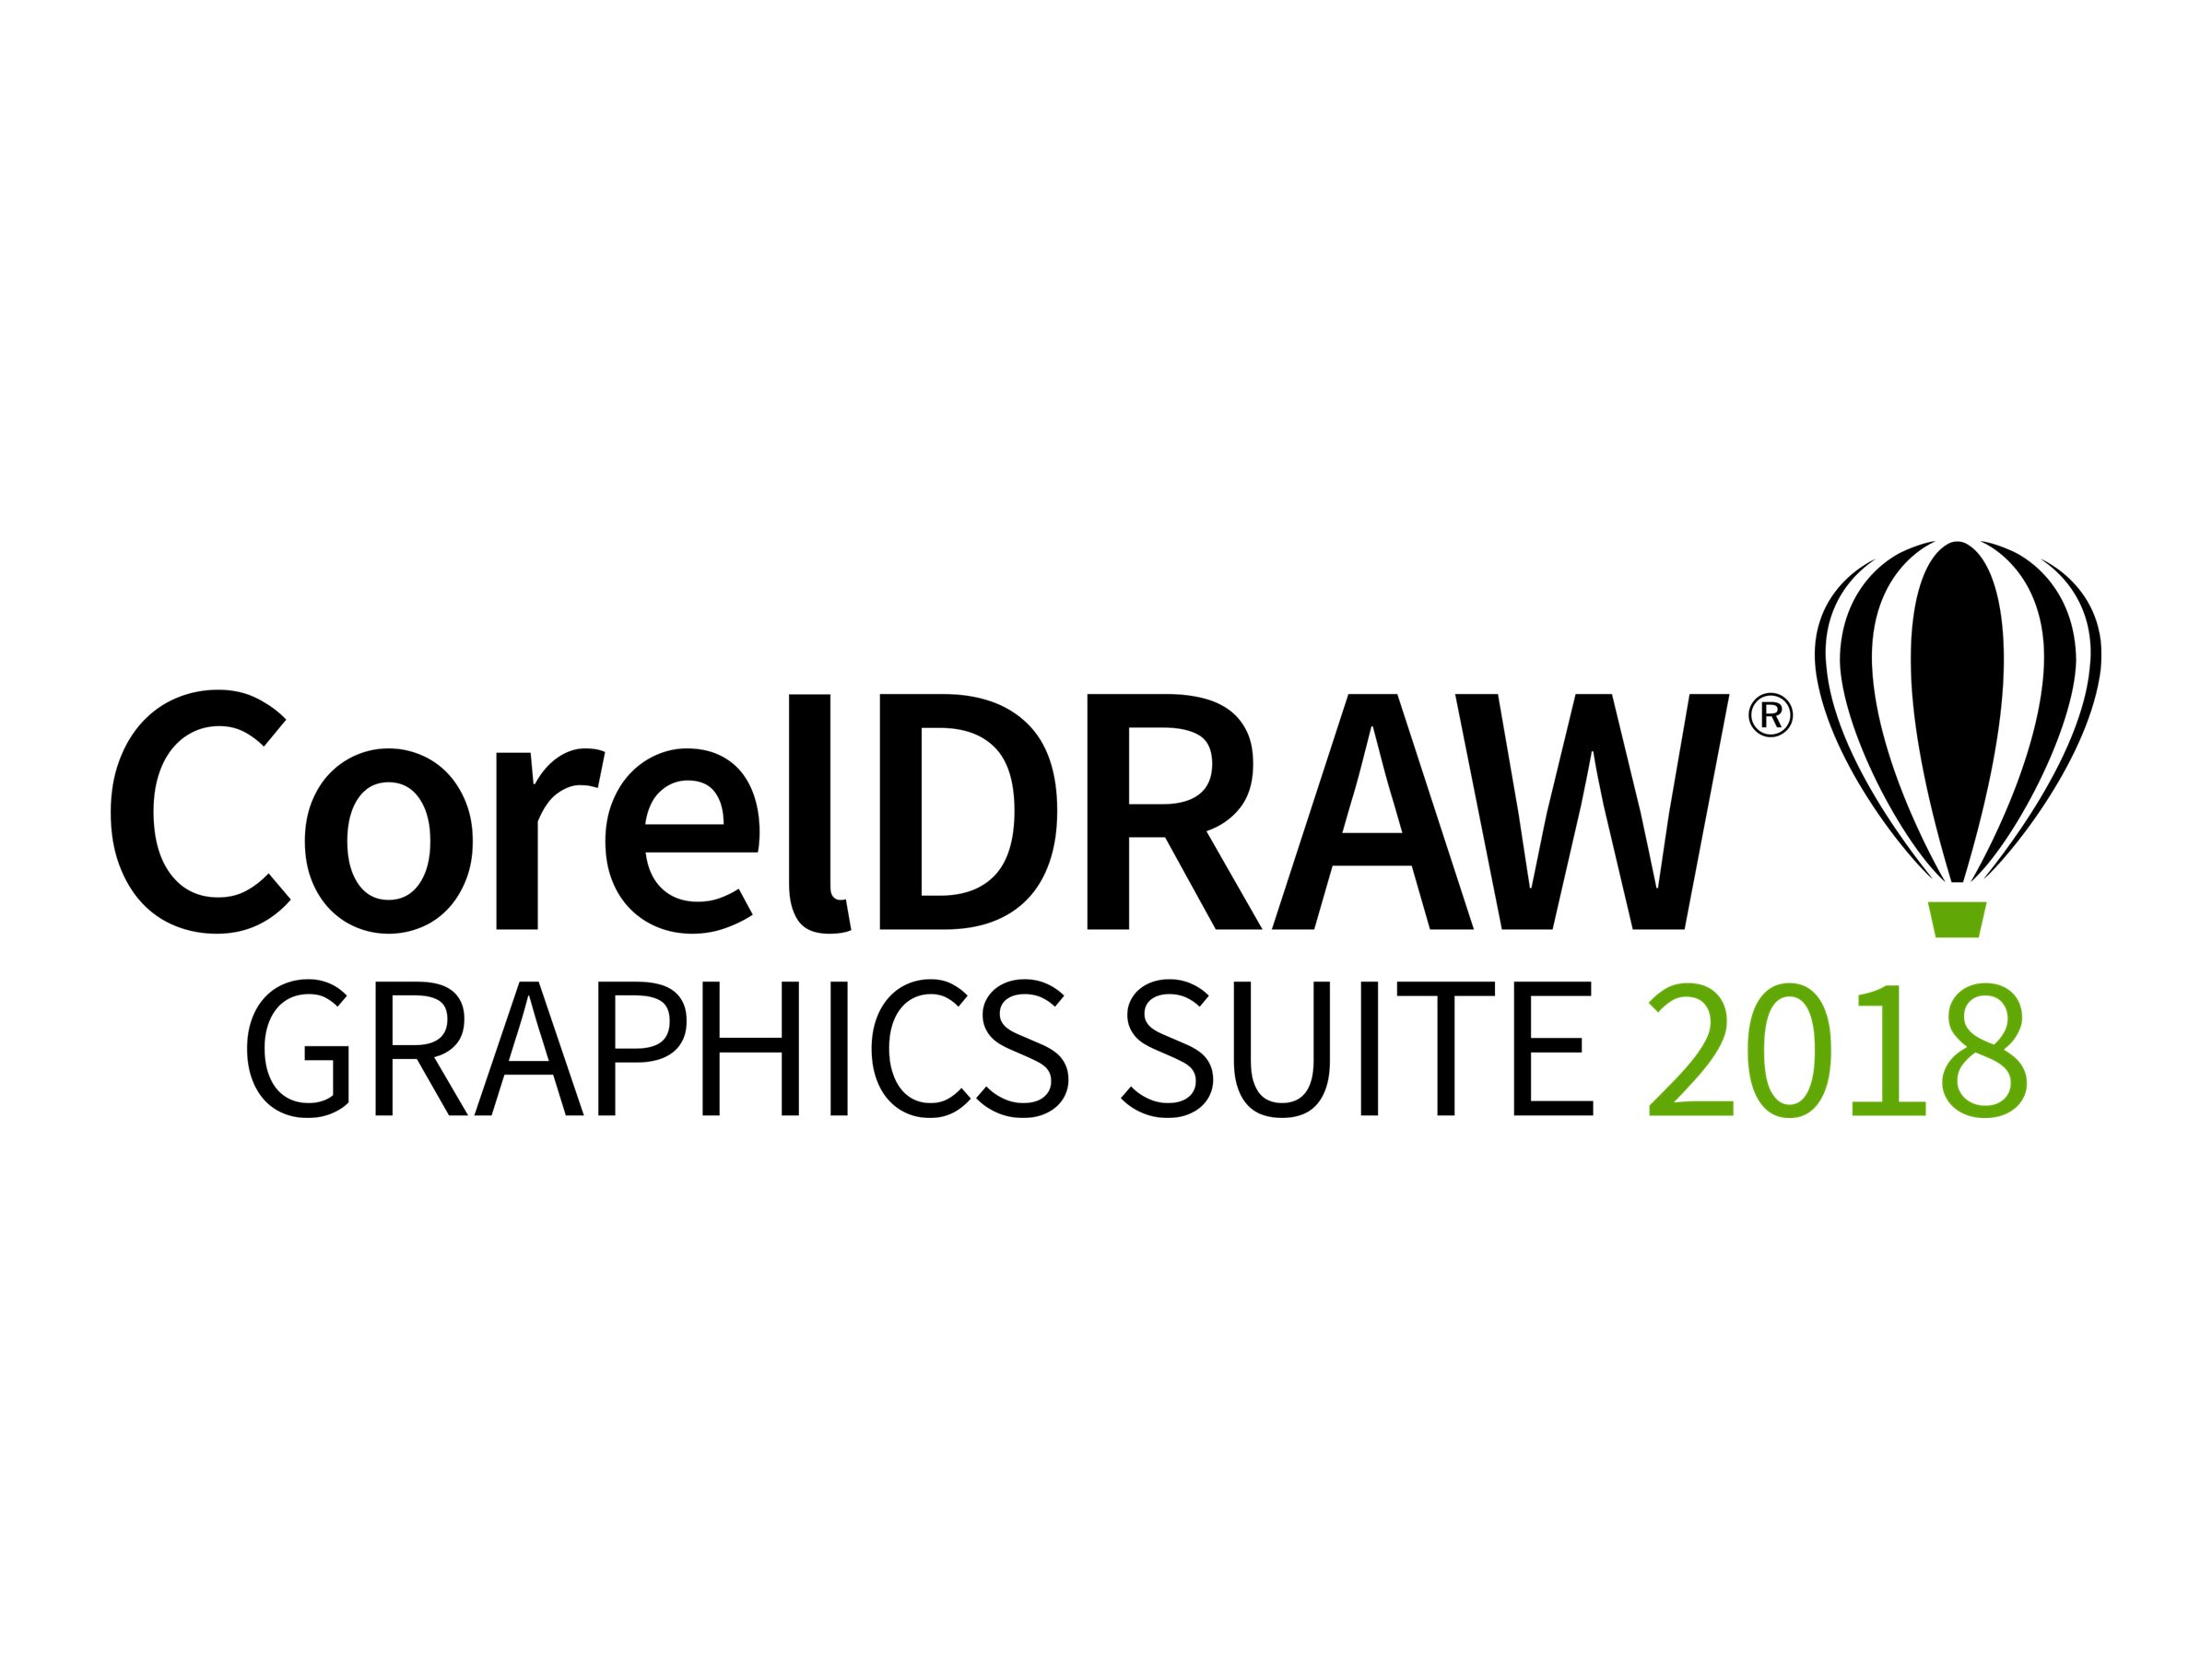 CorelDRAW Graphics Suite 2018 - Lizenz - 1 Benutzer - Corel Partner Kit - Win - Multi-Lingual